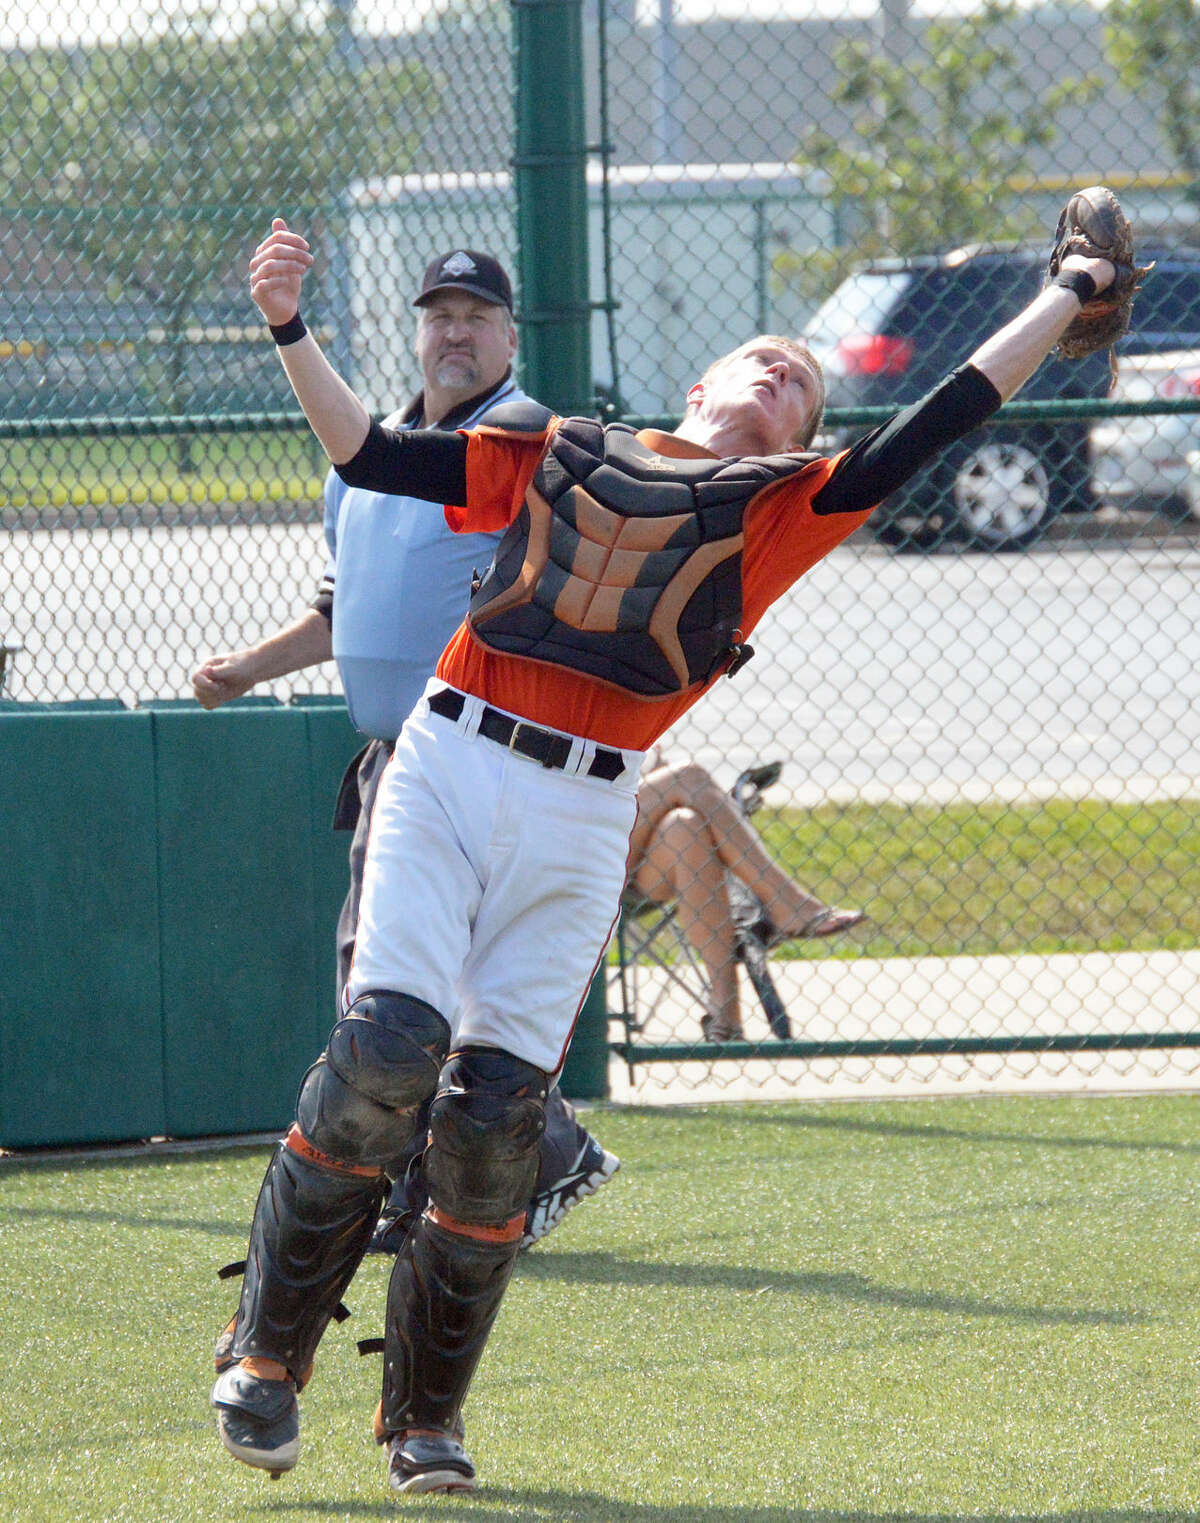 EHS catcher Will Messer leans back to grab a foul ball for an out.